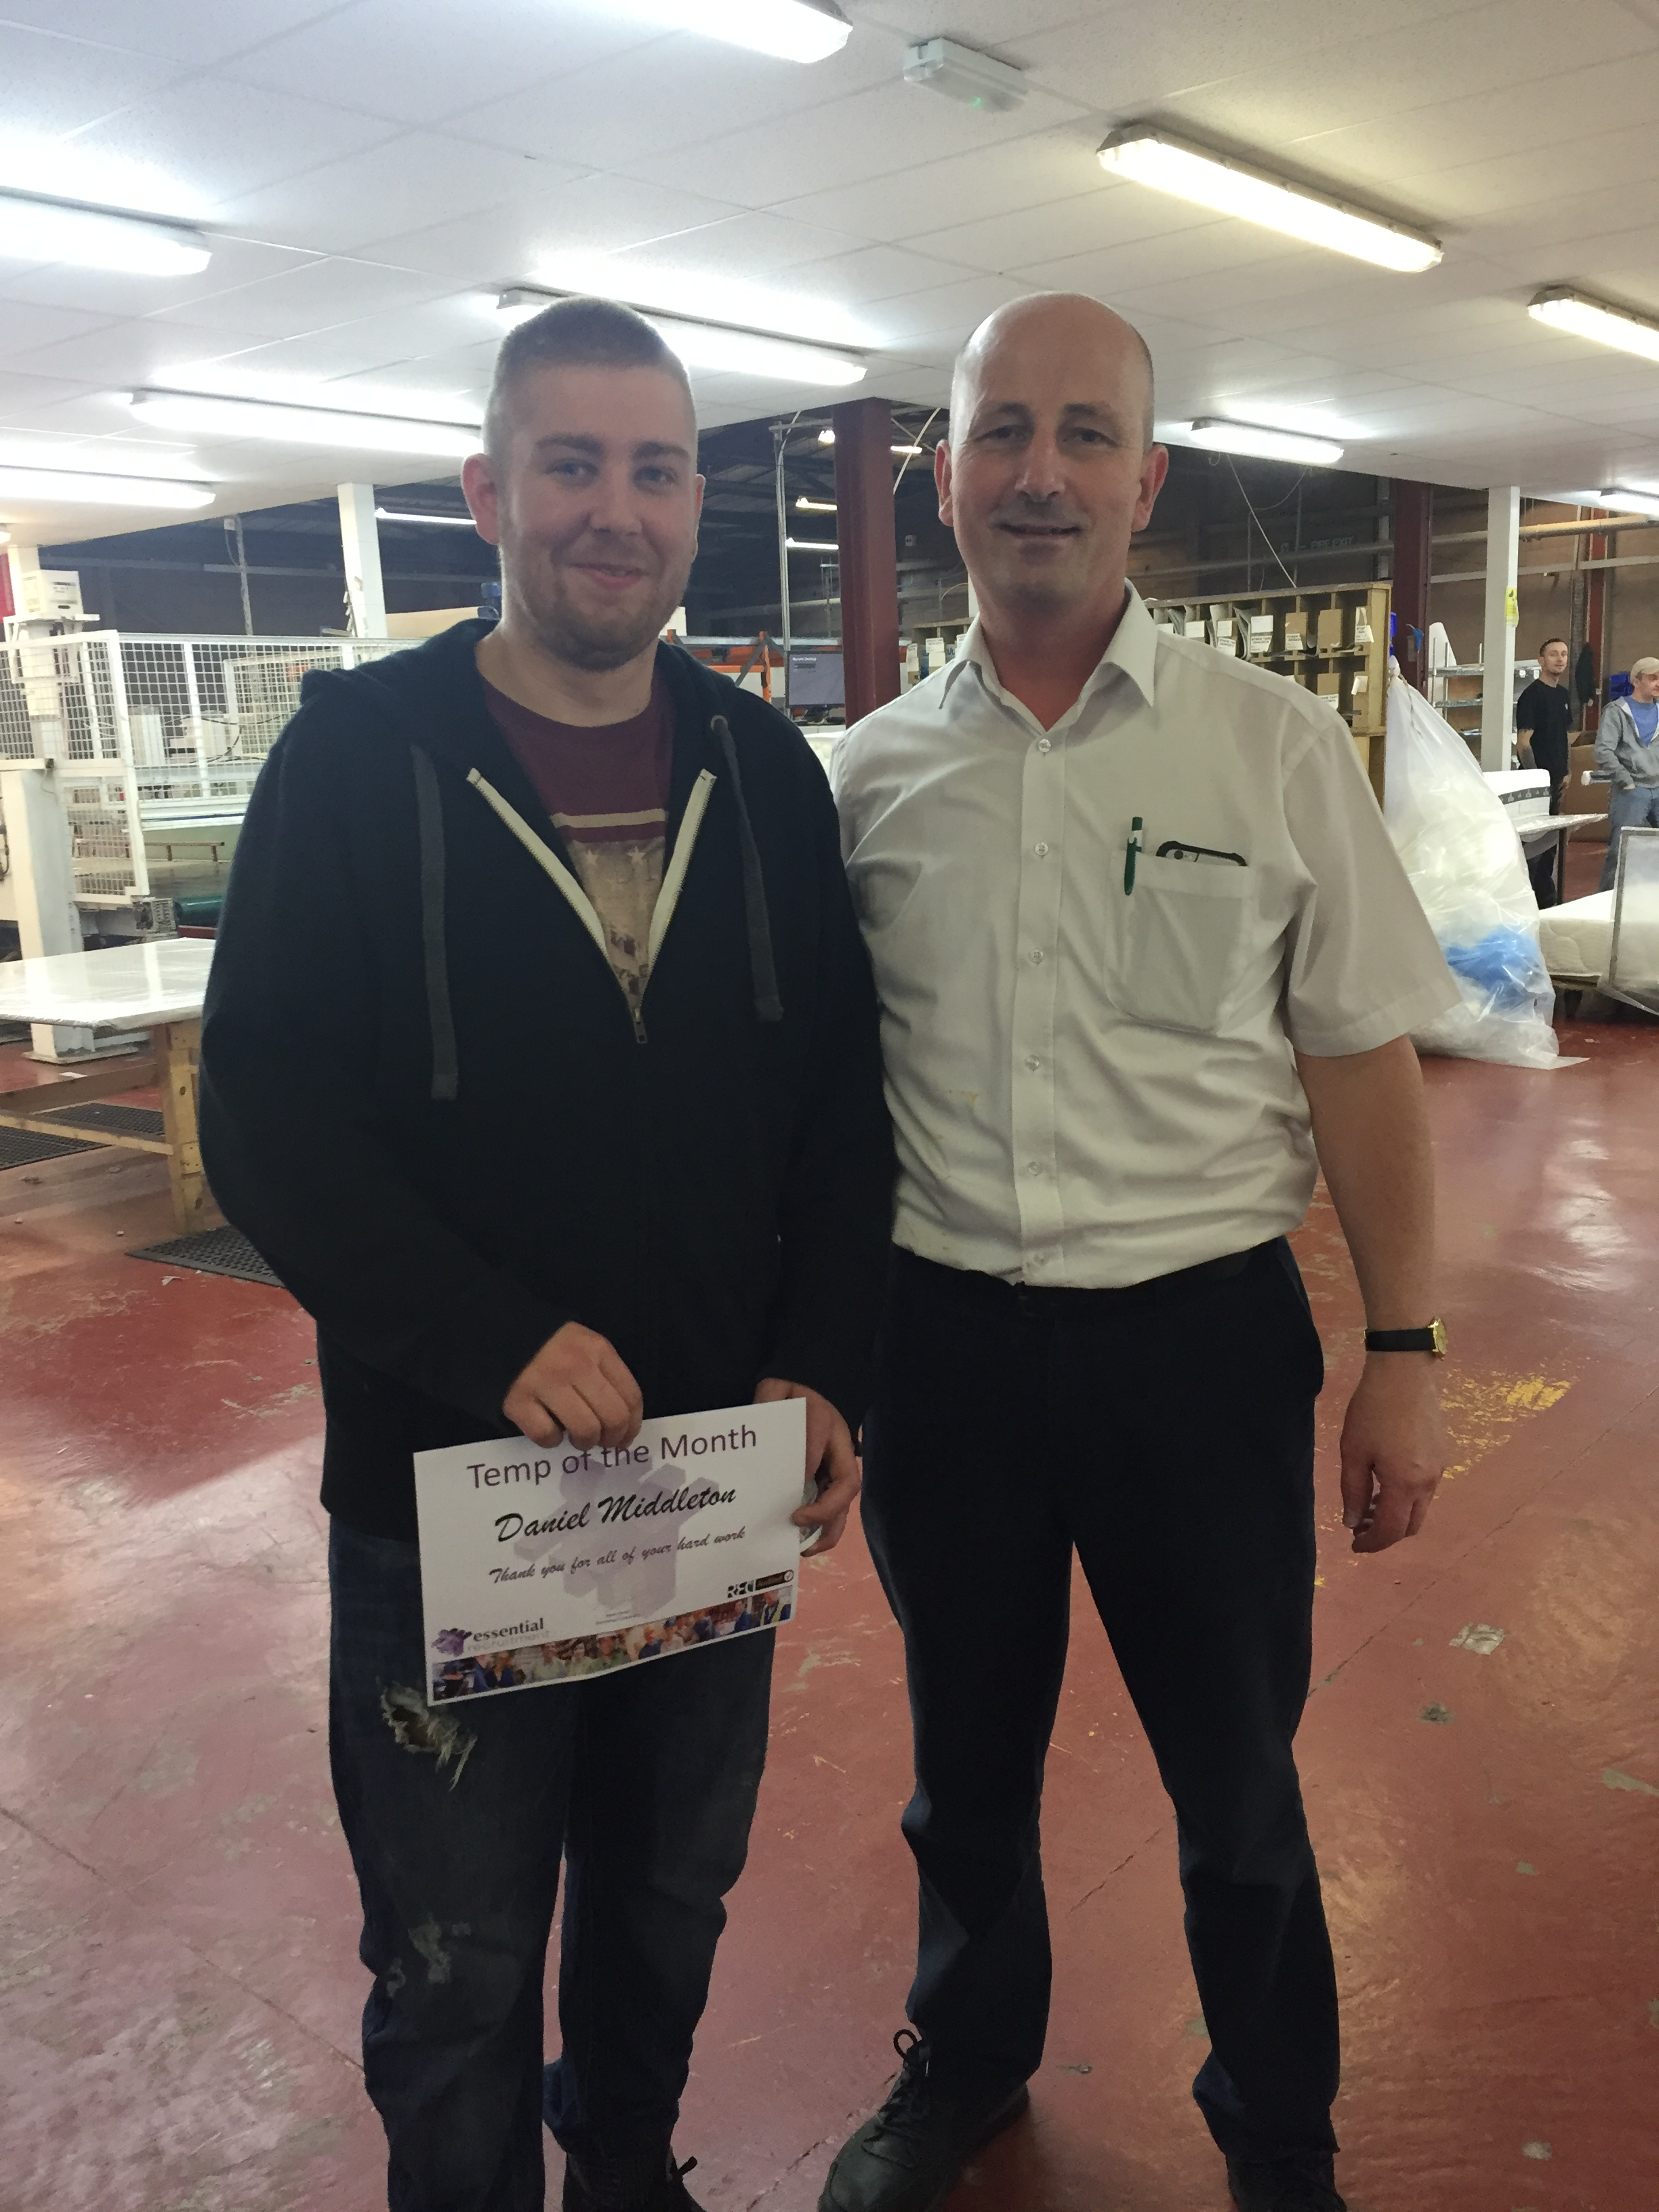 TOTM Daniel Middleton Long Eaton OCTOBER